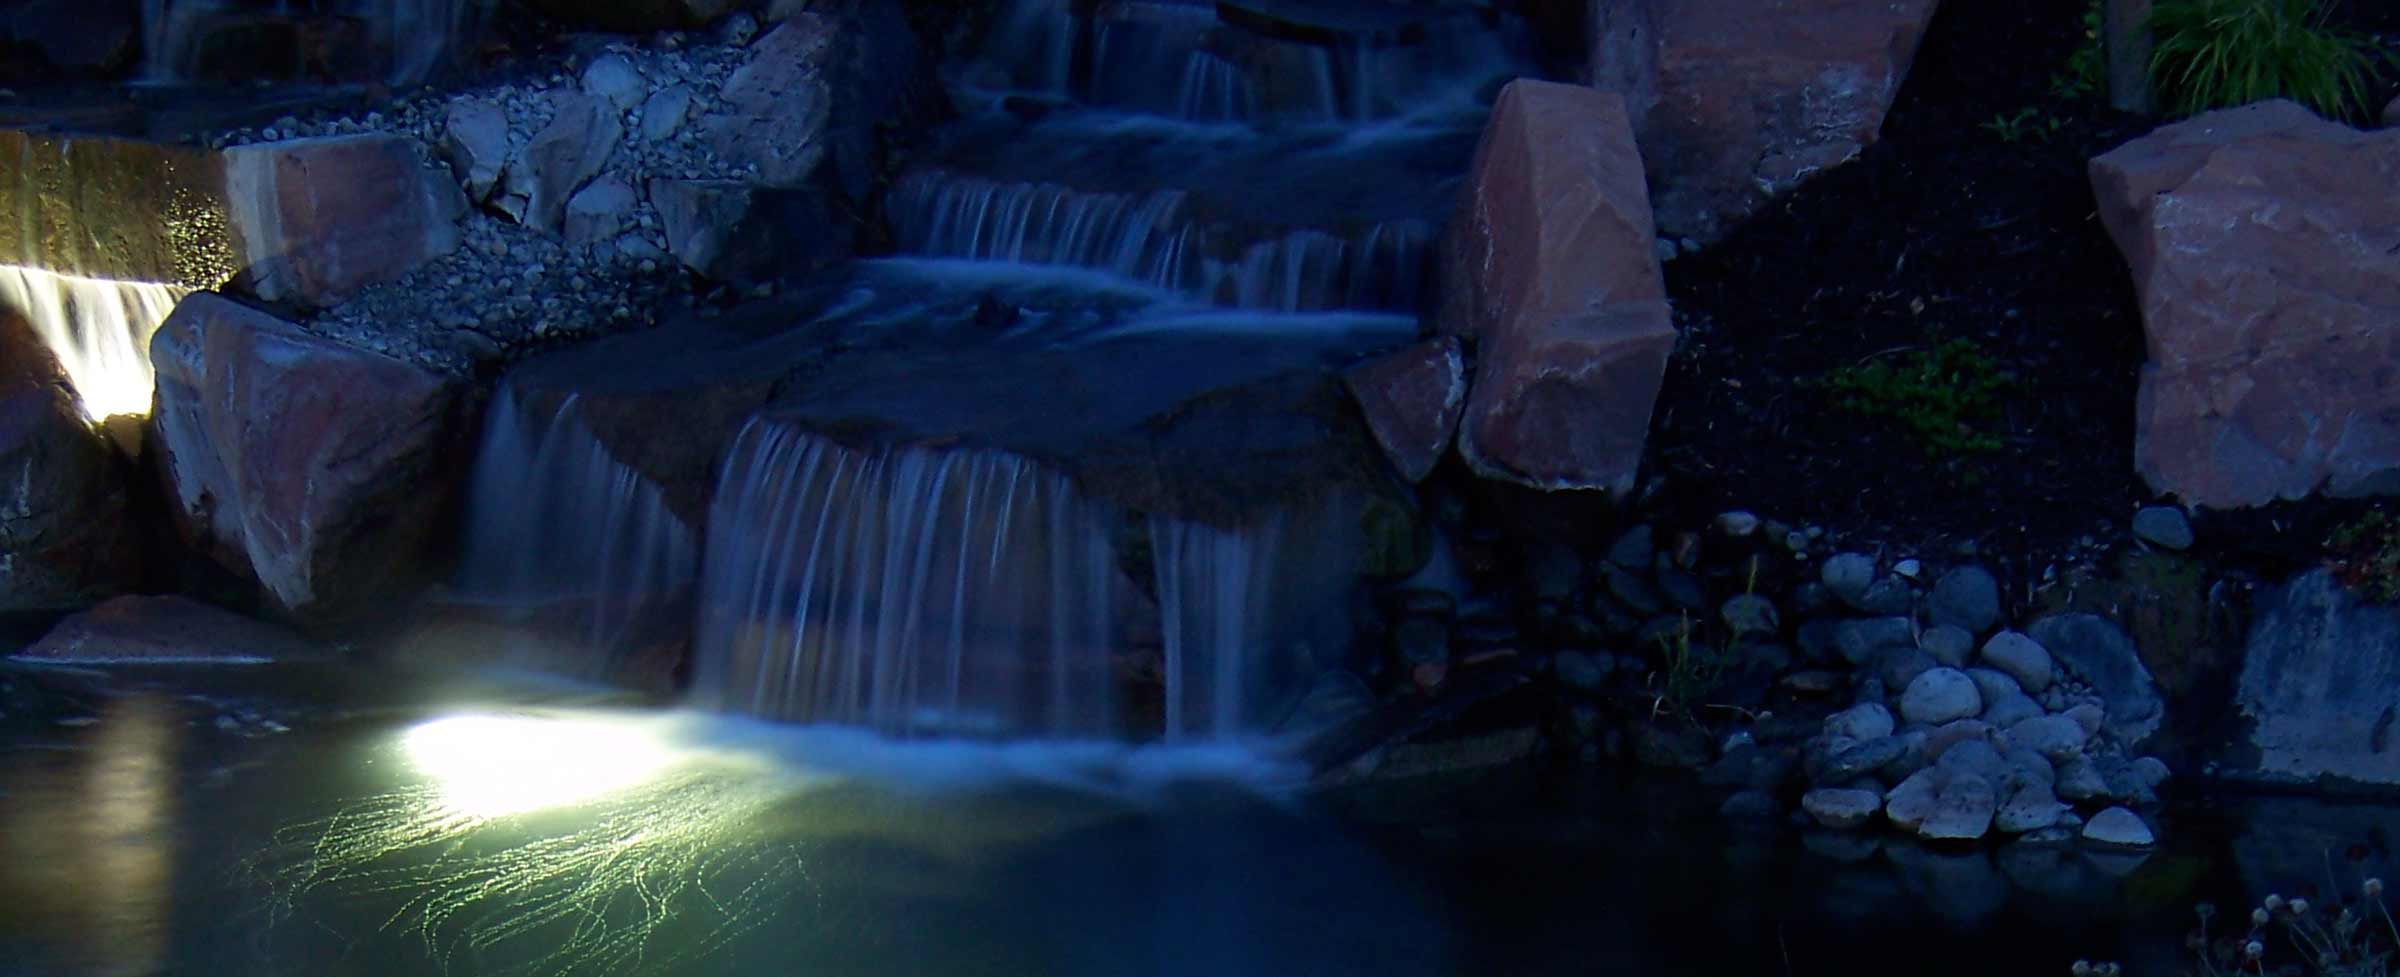 Waterfall and pond with lighting